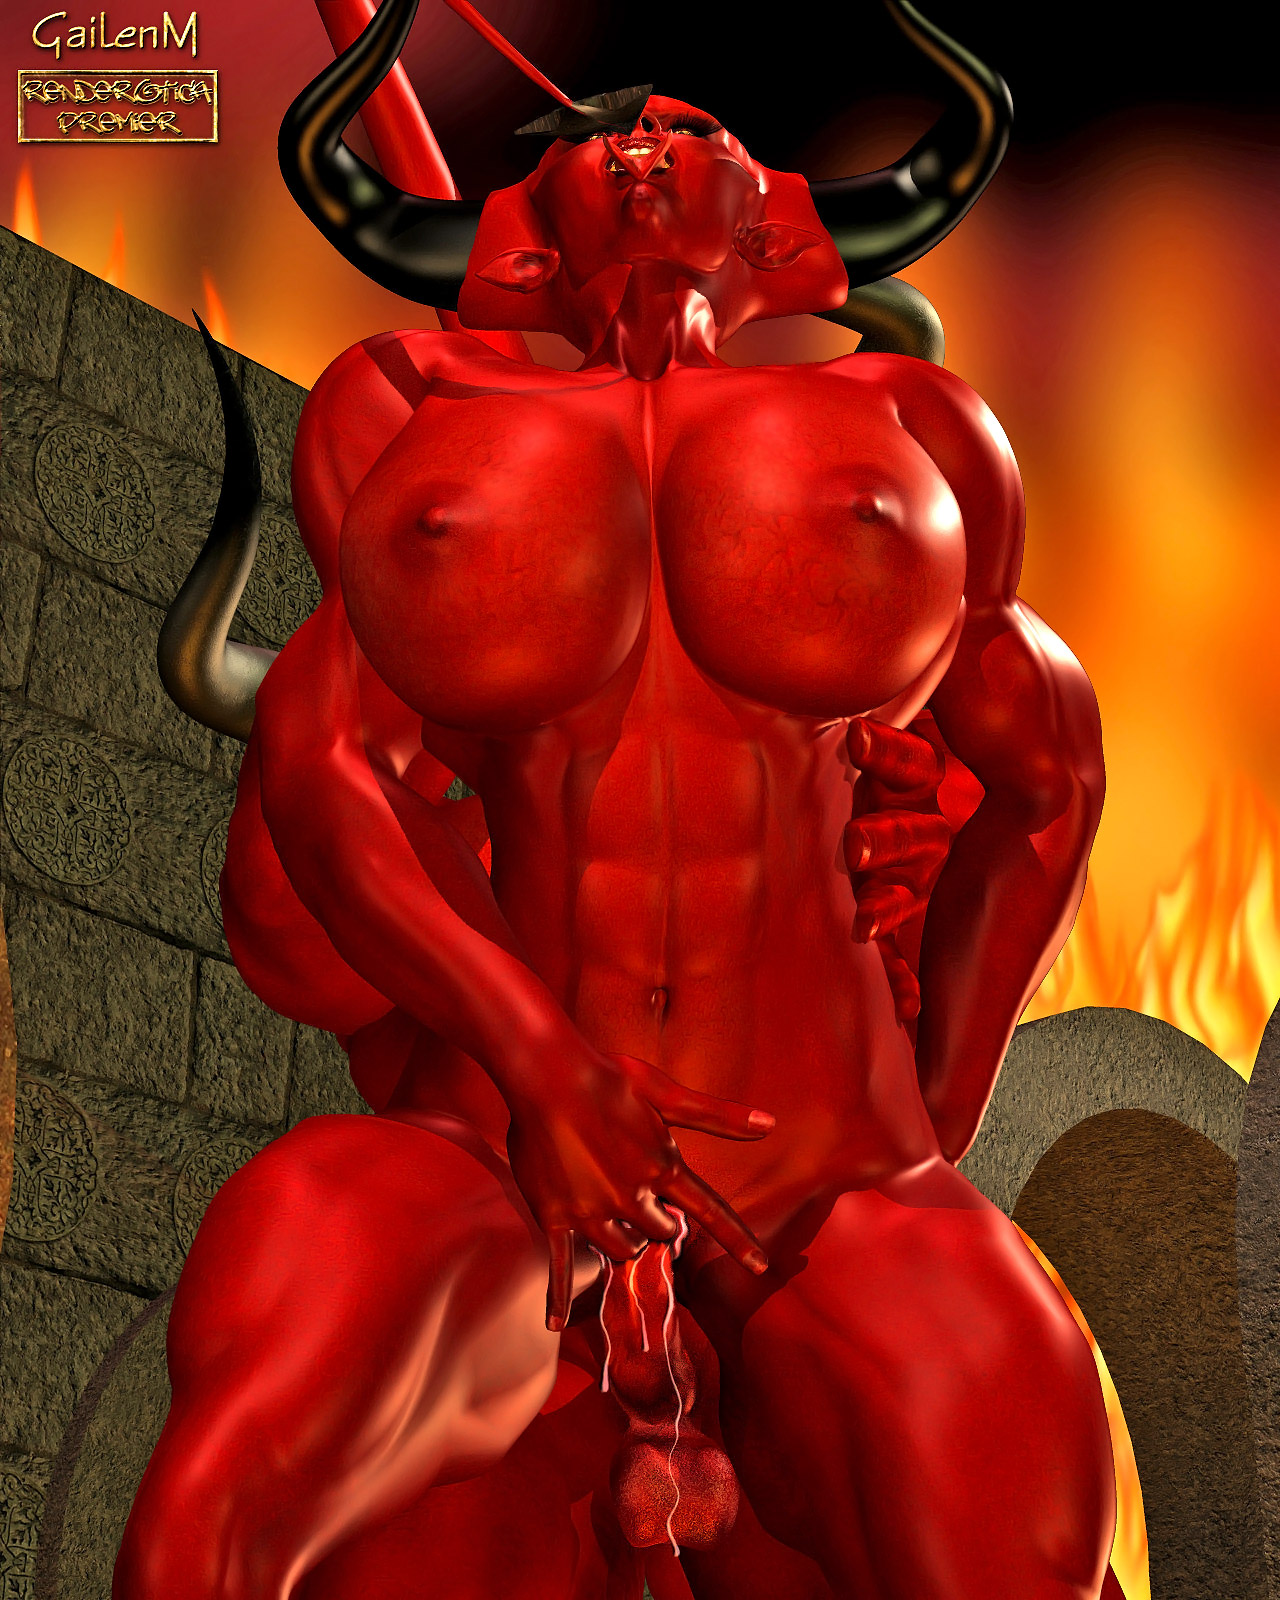 Demon fucking girl exposed pic